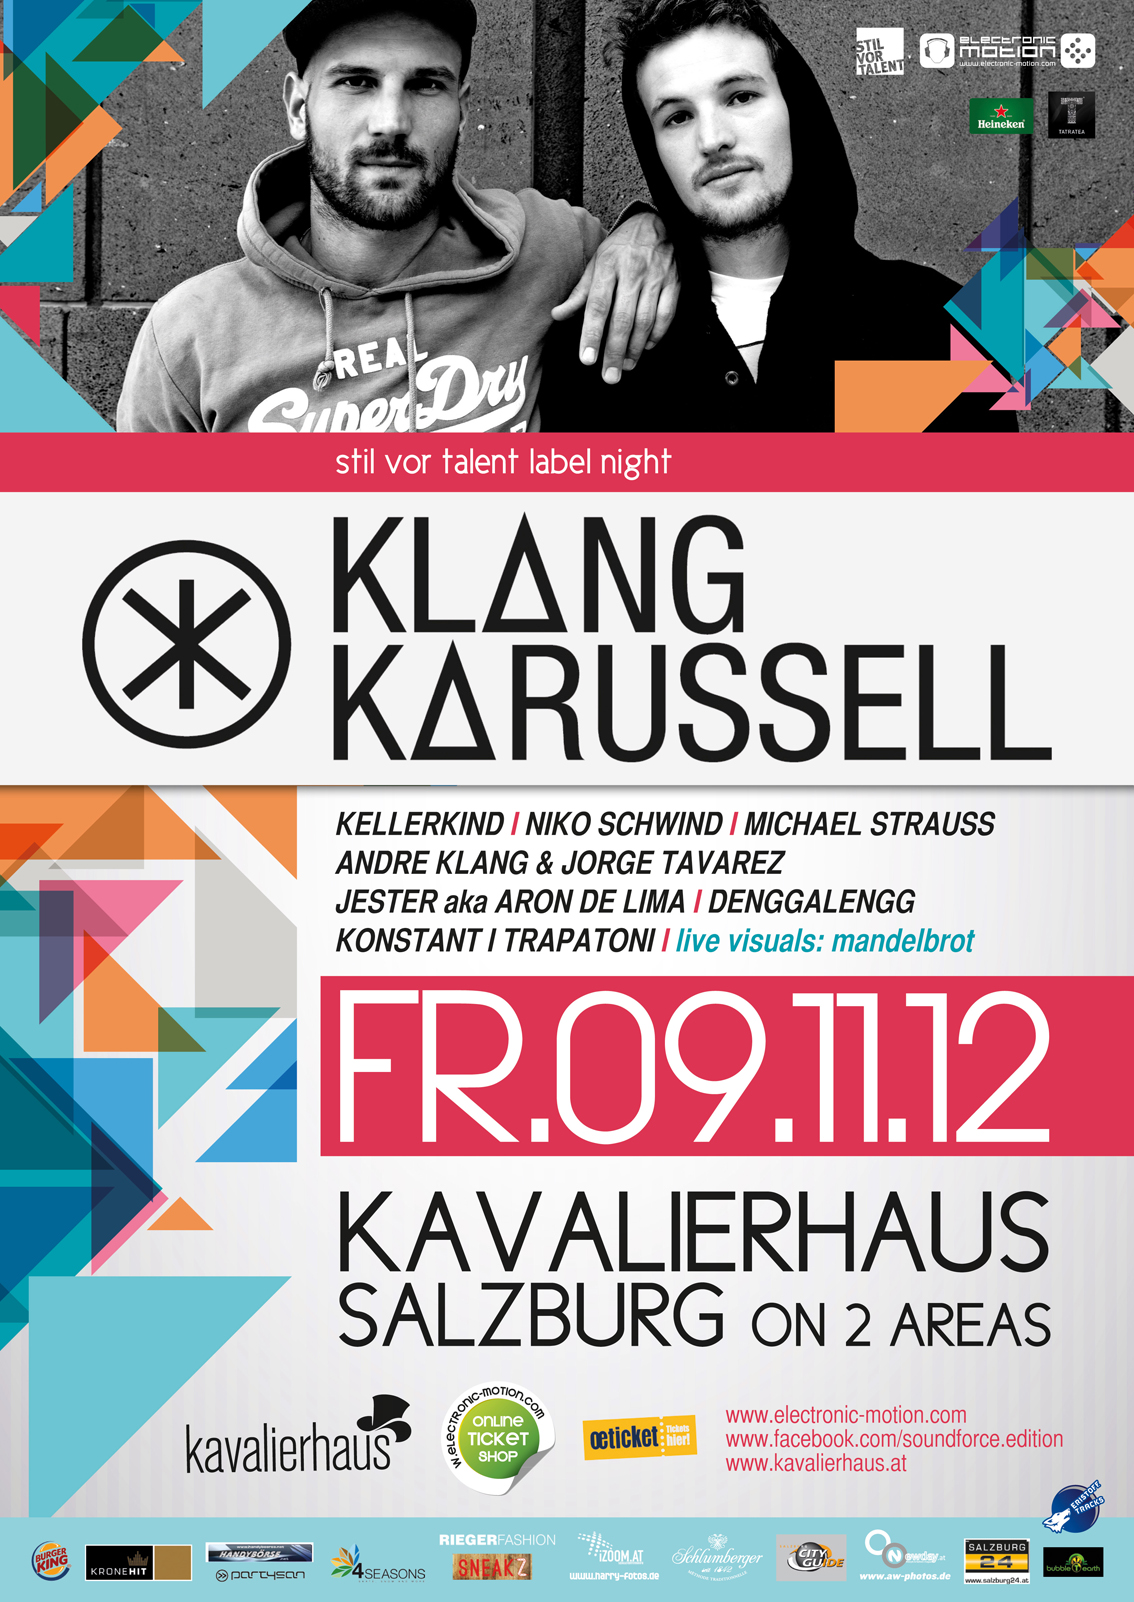 """STIL VOR TALENT"" LABEL NIGHT — featuring KLANGKARUSSELL, 09.11.2012 @ KAVALIERHAUS Klessheim, Salzburg"